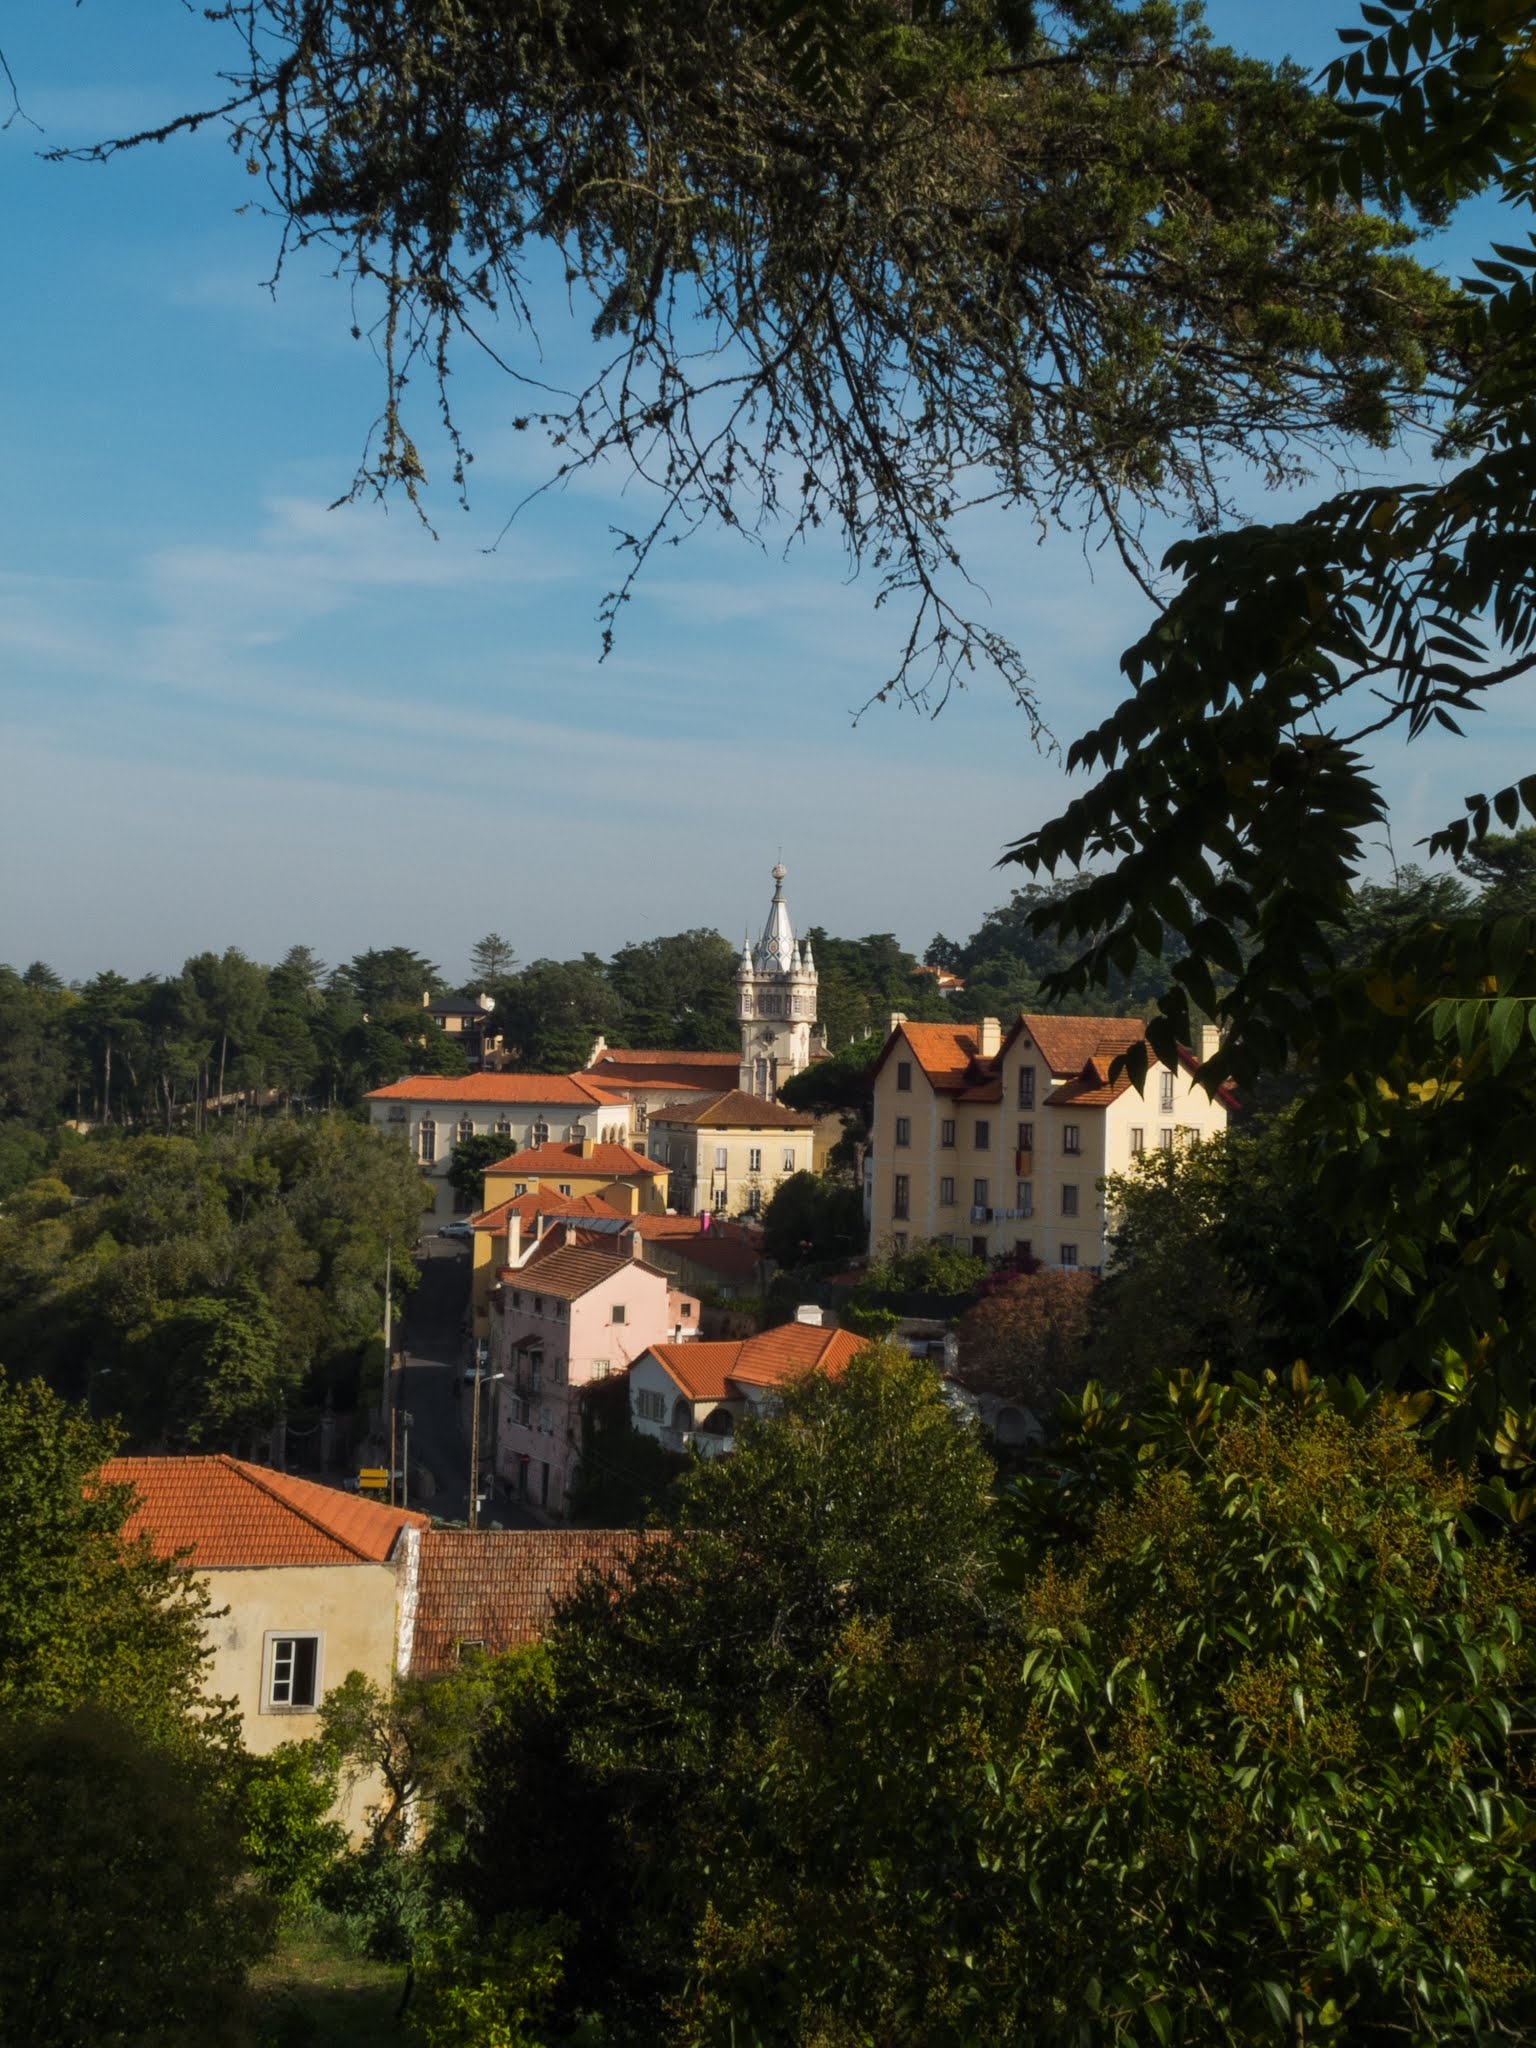 View of Sintra Town Hall through trees on a sunny day.